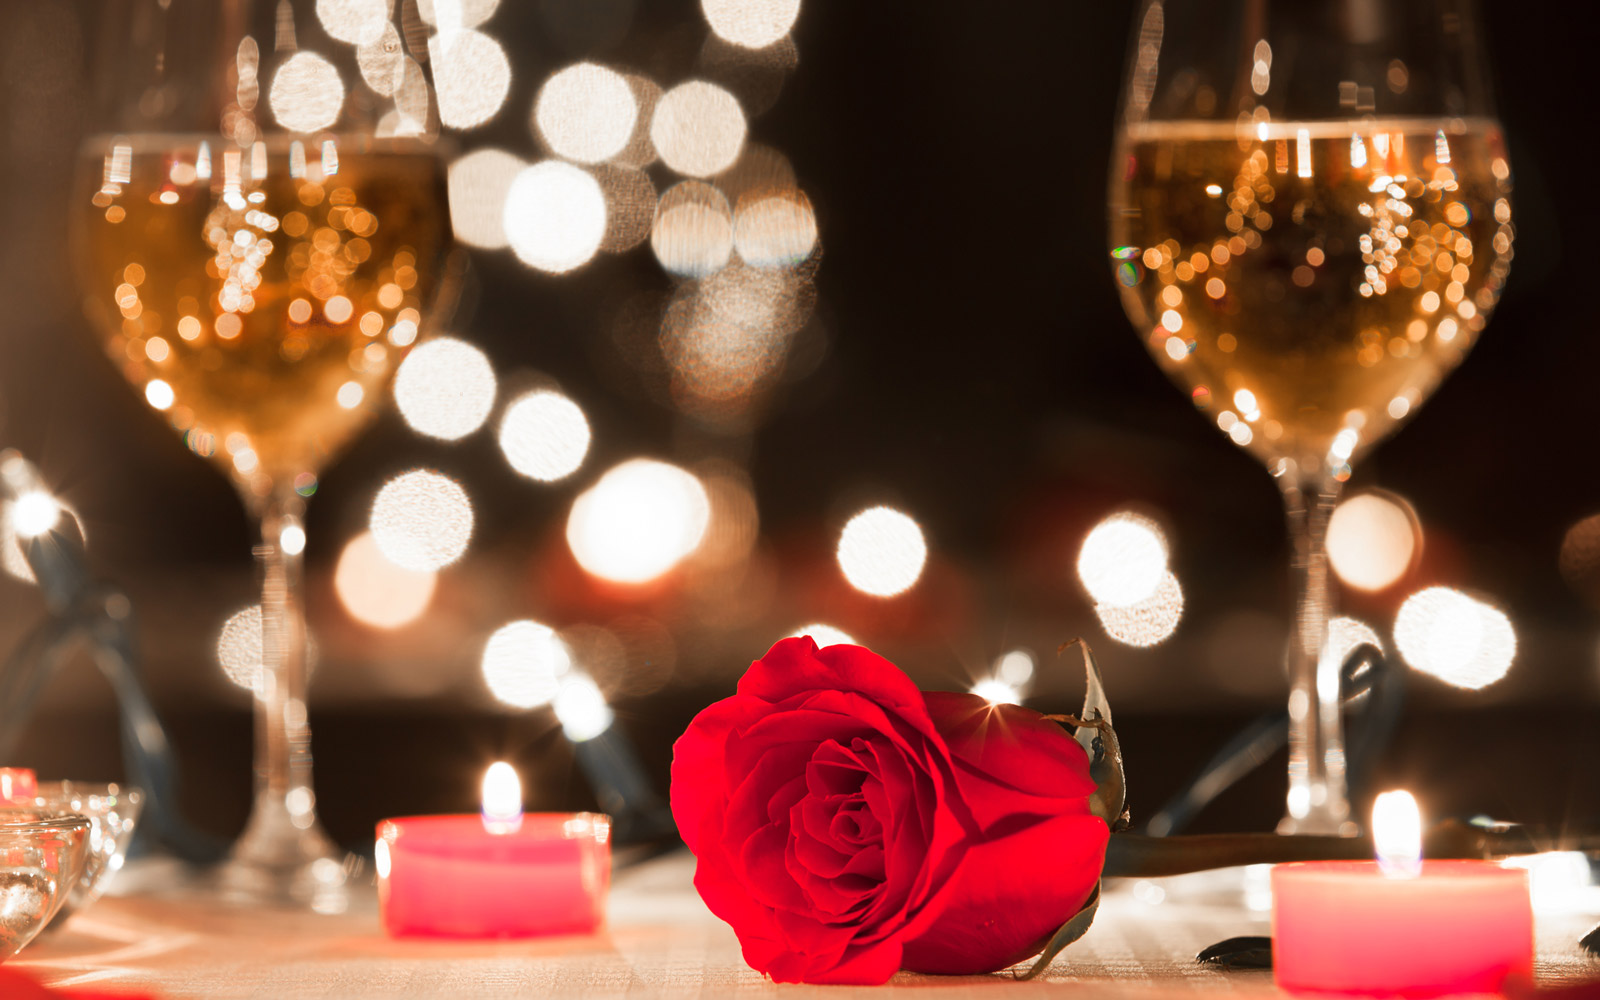 How to Book a Last-minute Valentine's Day Reservation